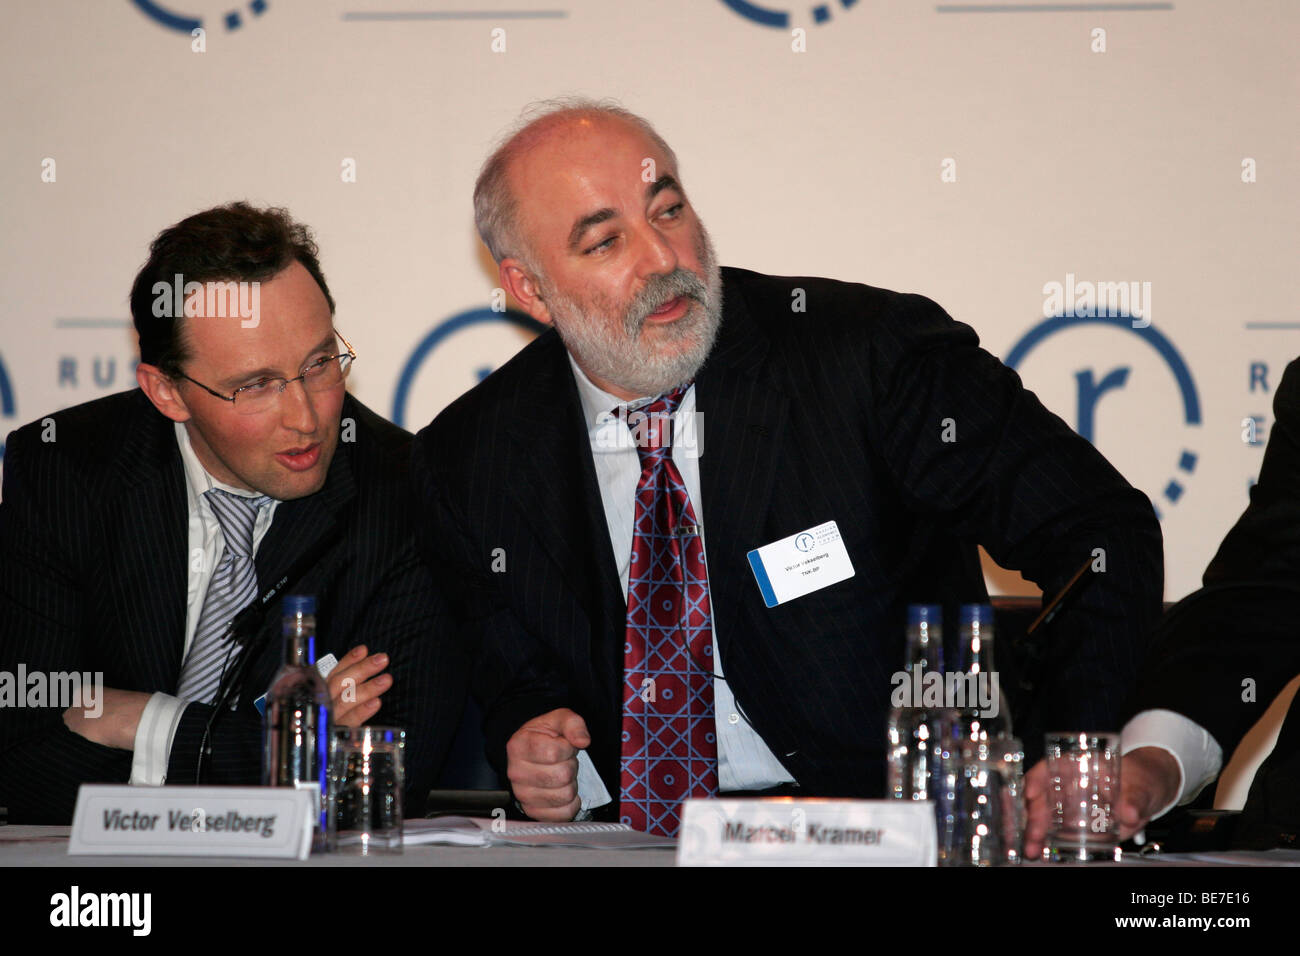 Petr Aven and Victor Vekselberg (right), Russian oligarchs during Russian economics forum in London - Stock Image